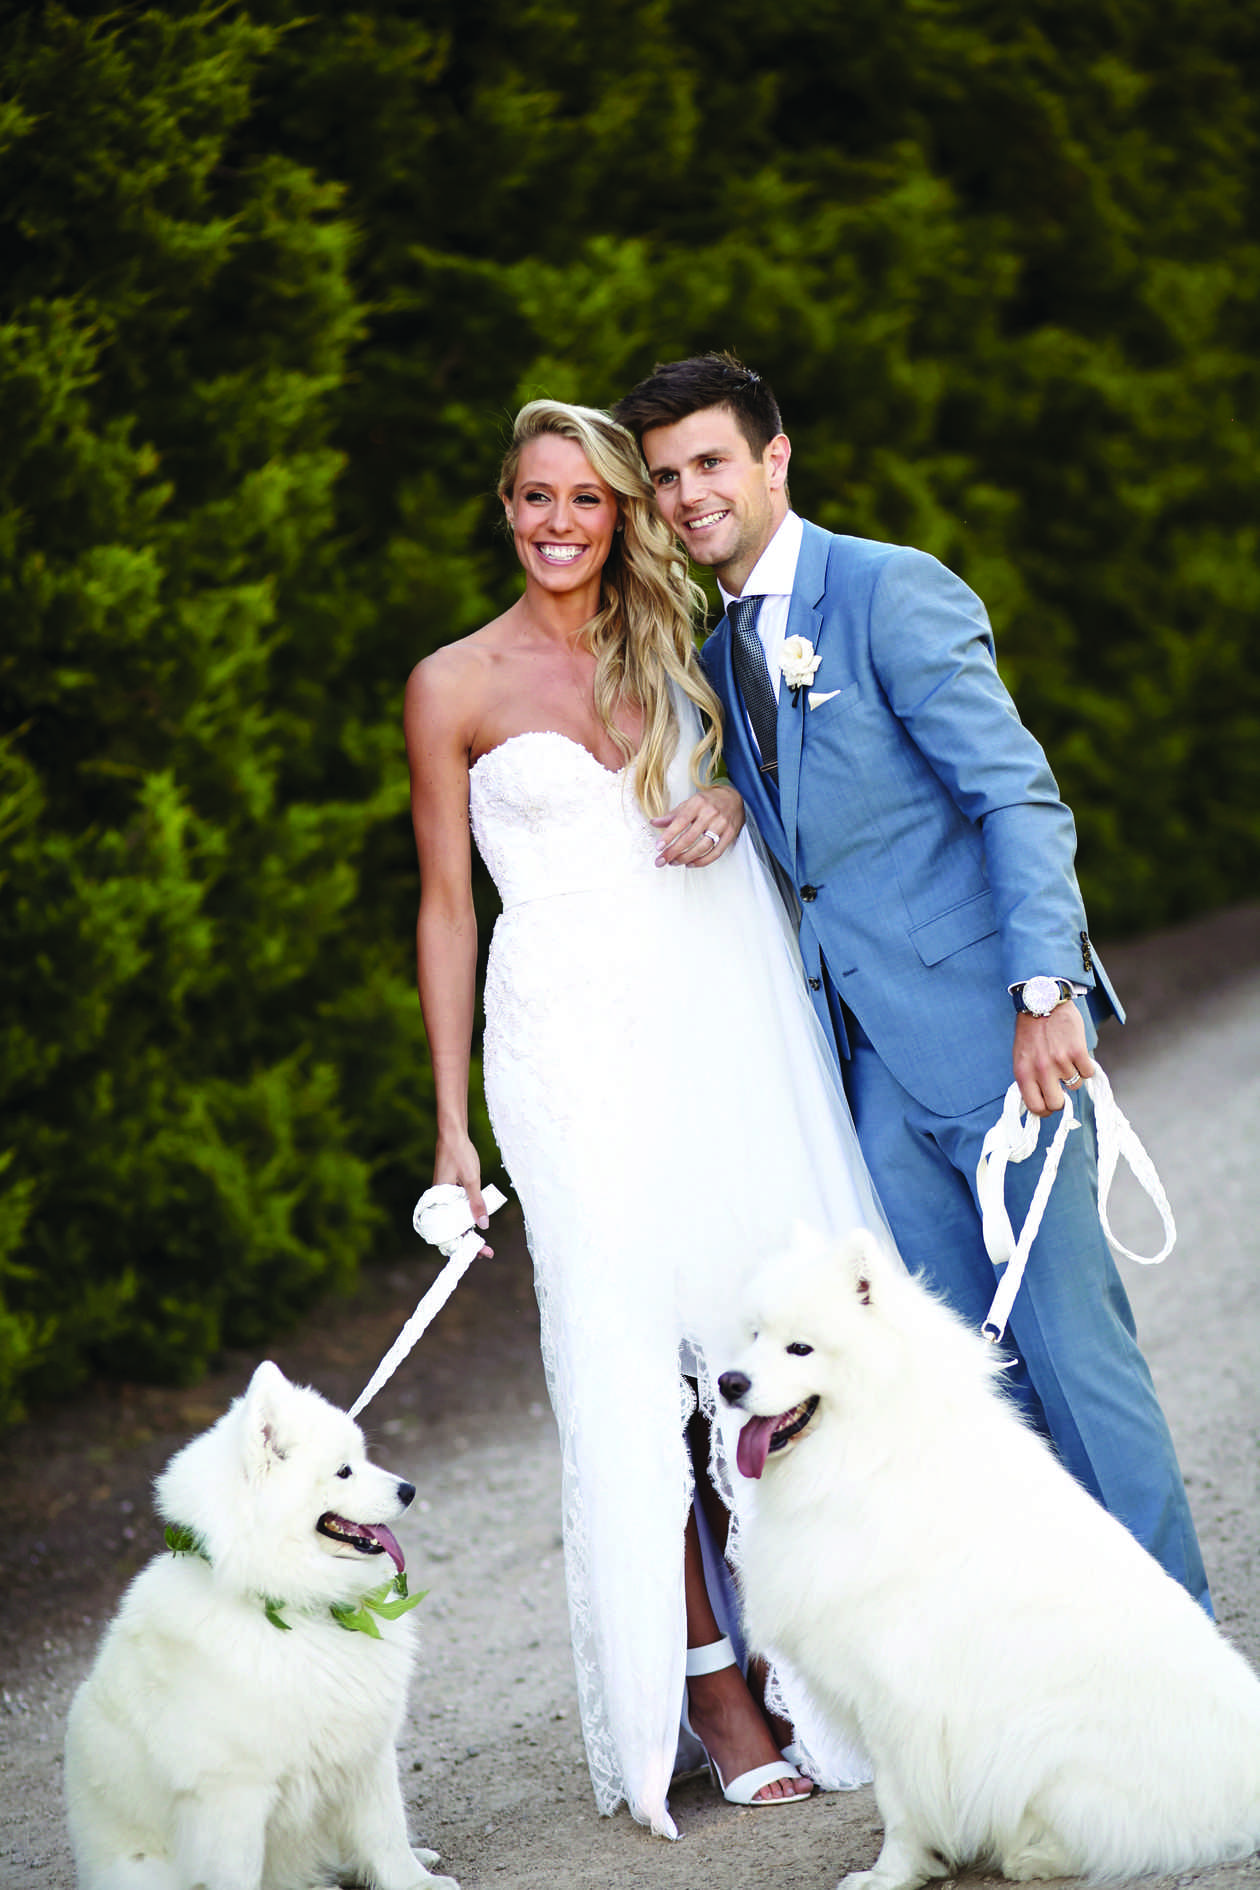 Trent and Brooke's Wedding Photos with Dogs at Private Residence